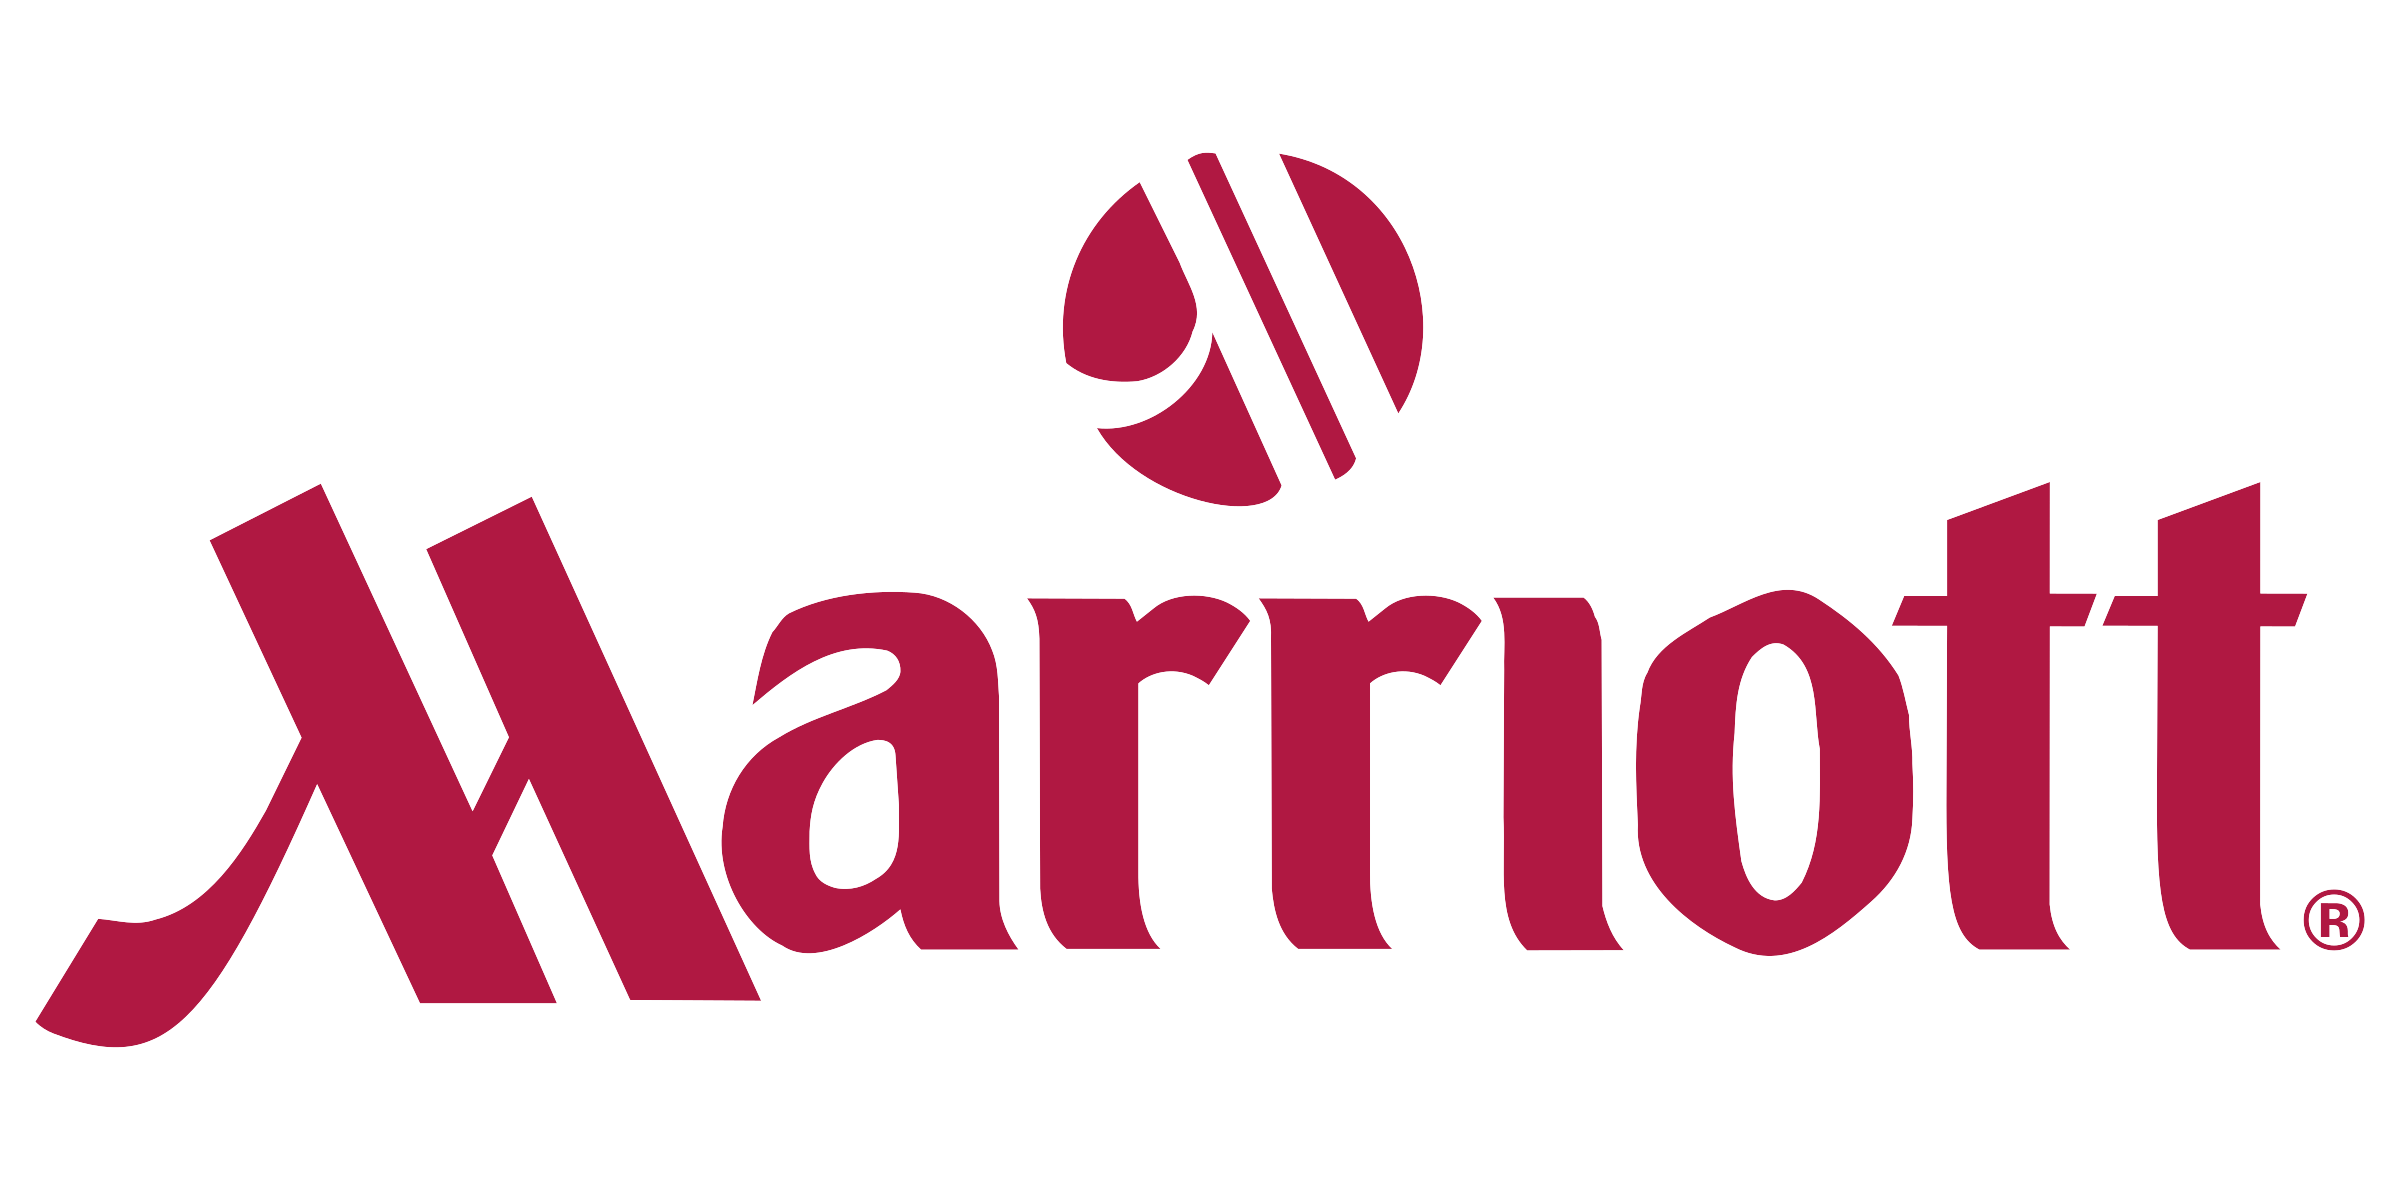 graphic design Marriott logo